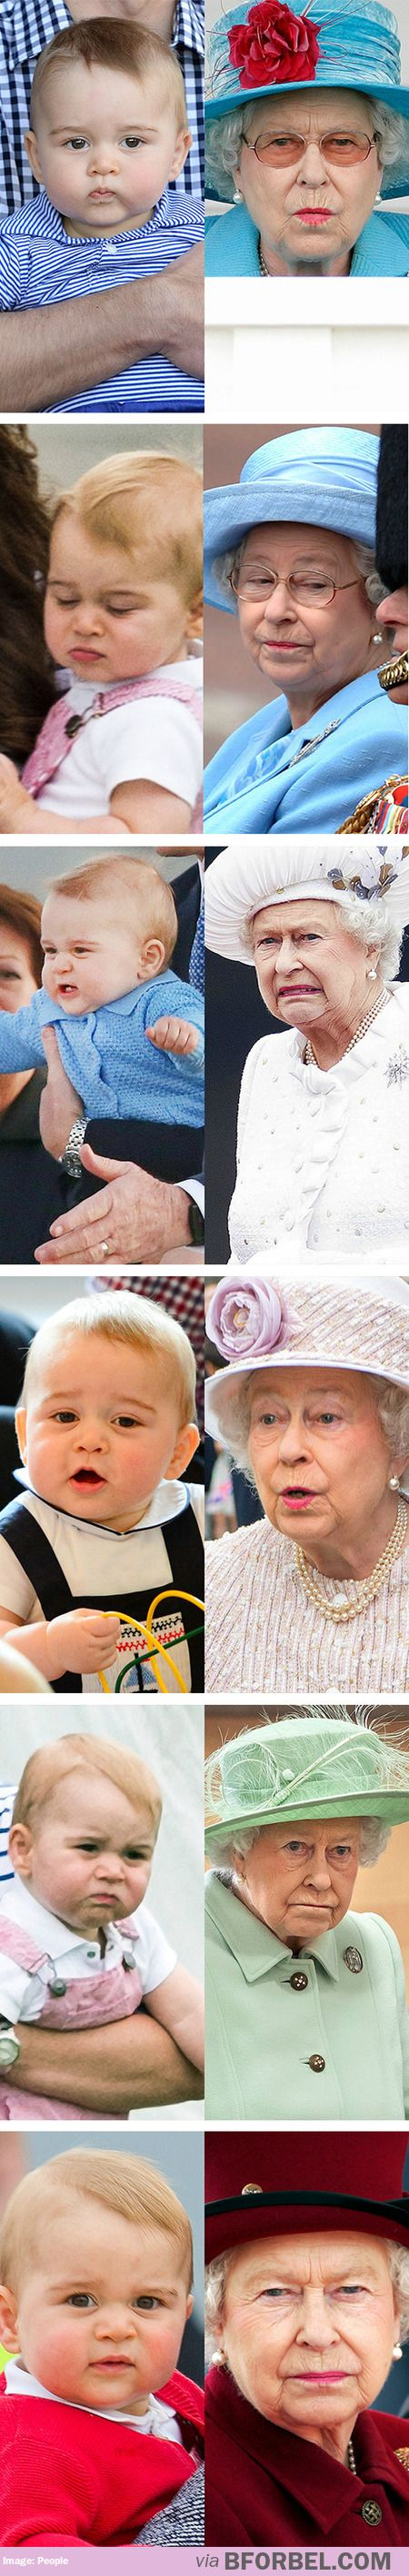 Prince George & great grandmother Queen Elizabeth II ~~ That's hilarious! Love love love it!